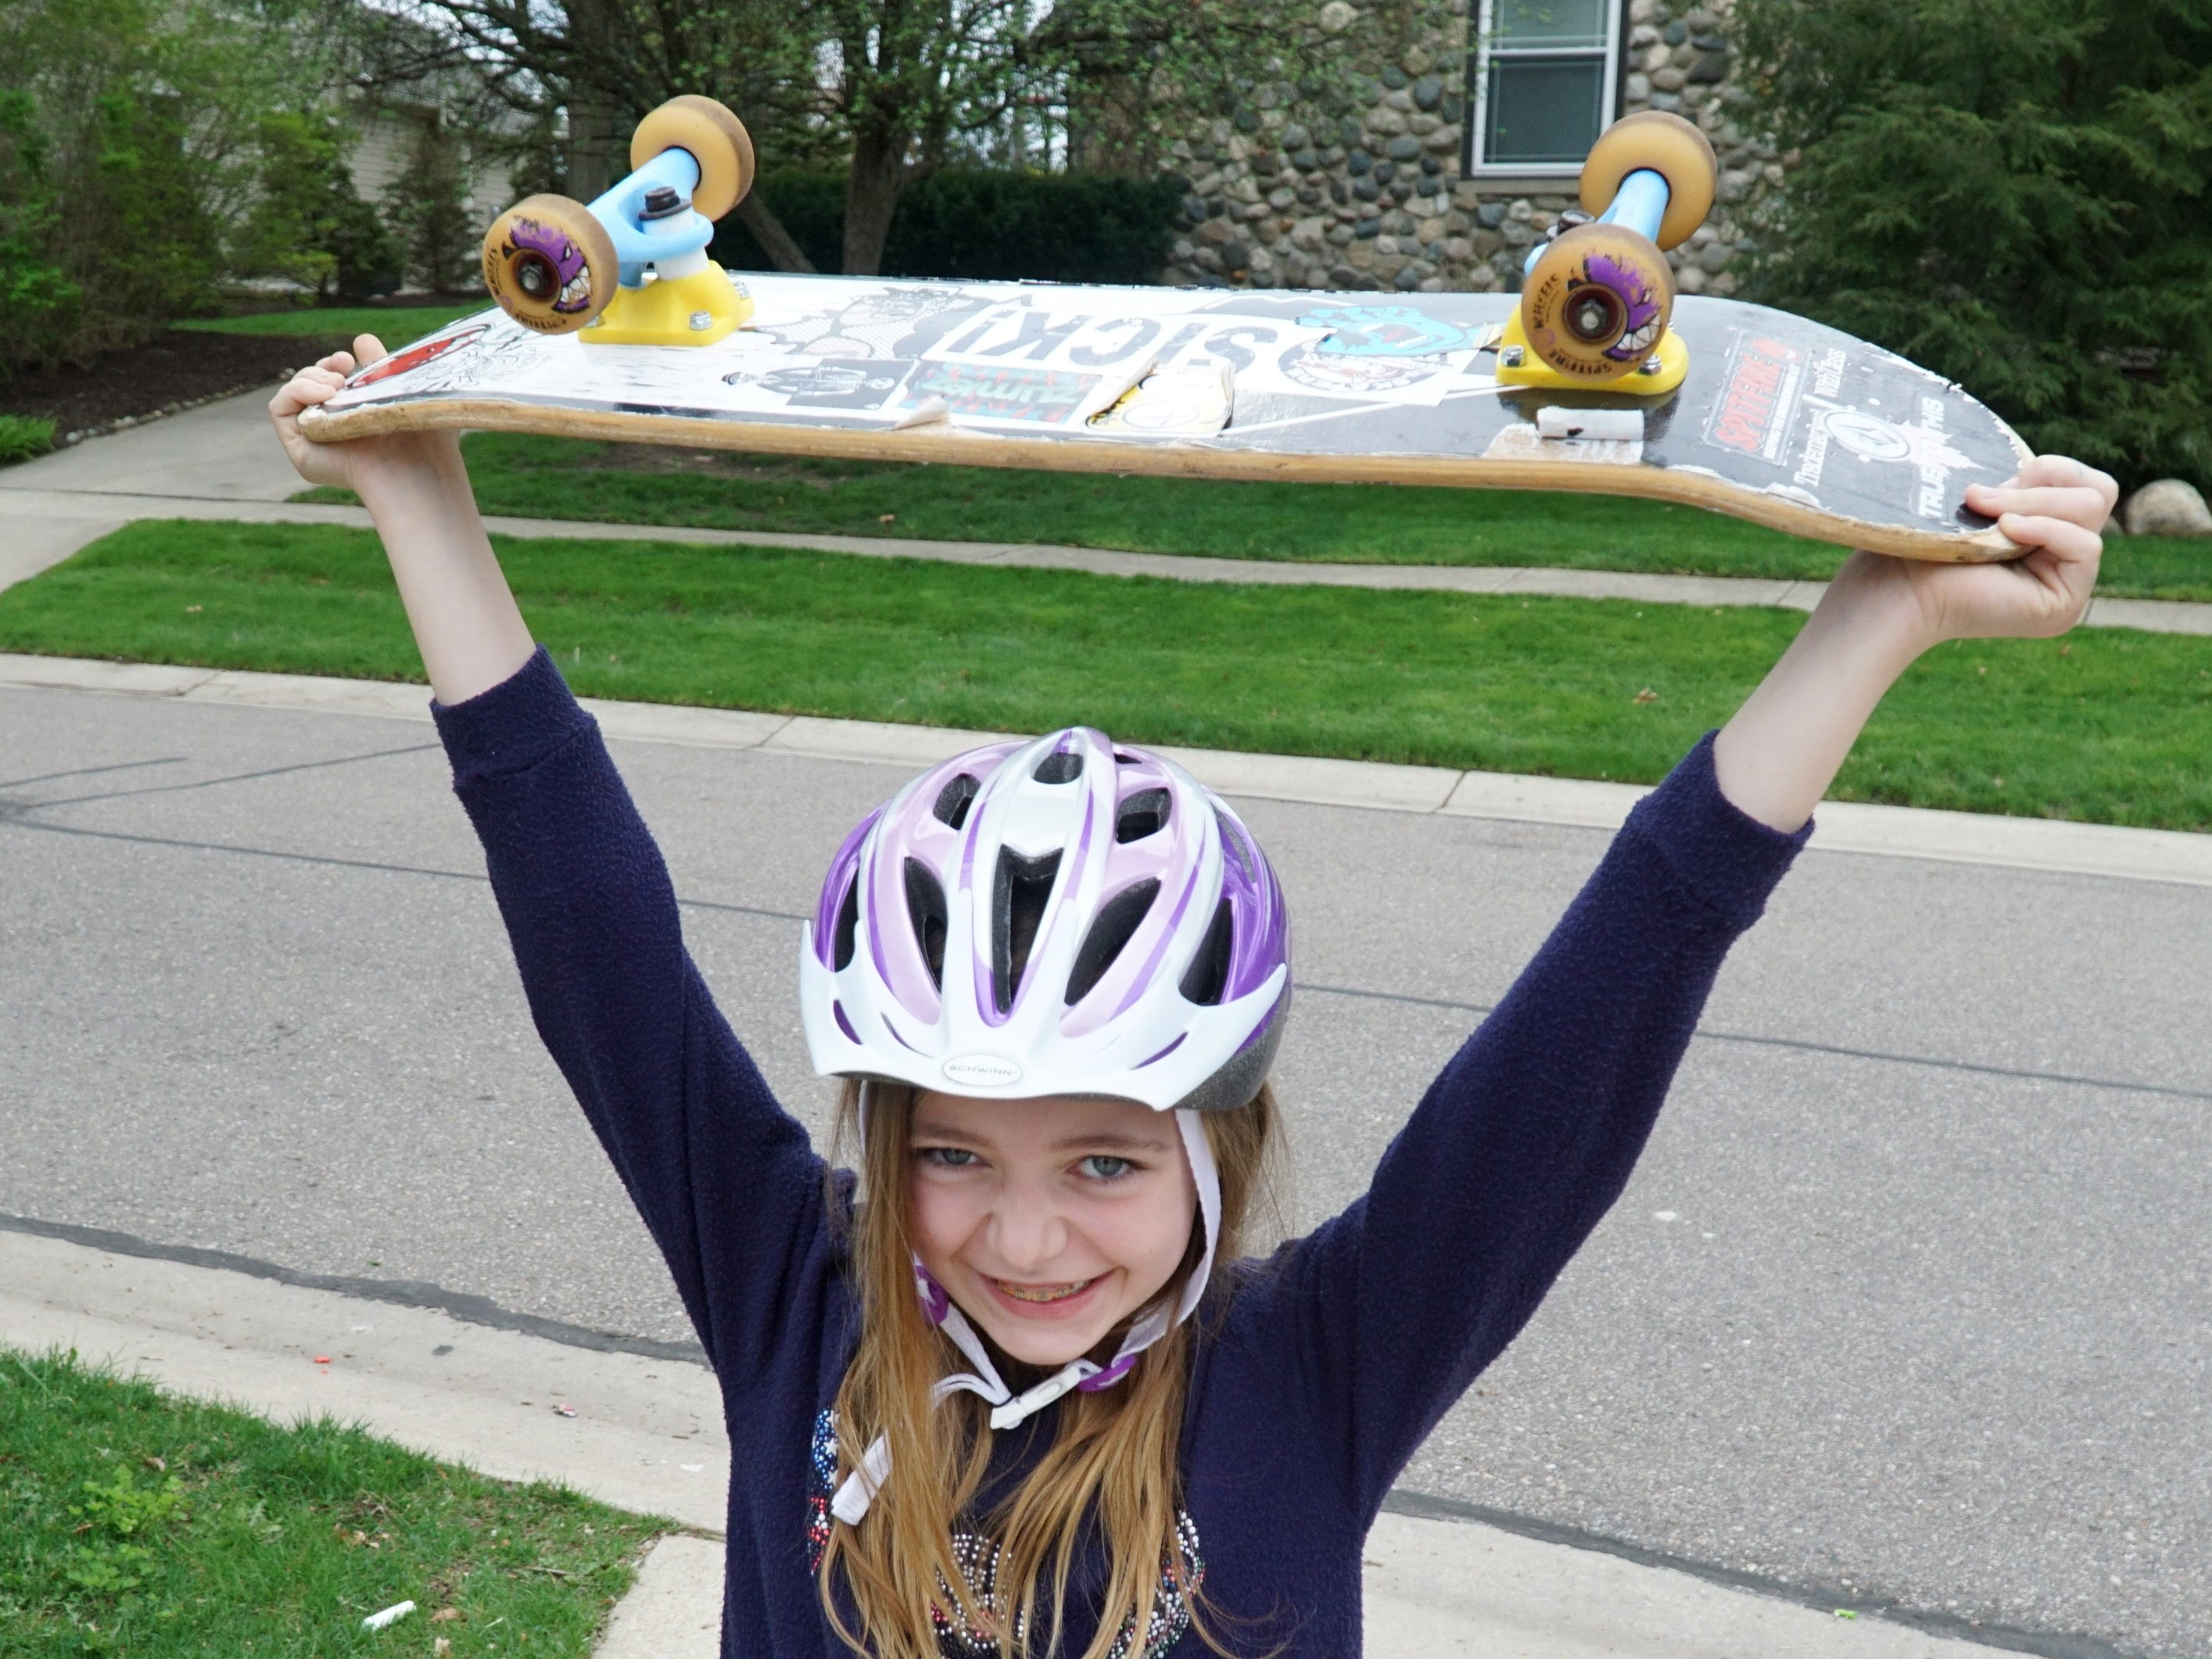 Lovey Stempien, 9, is hoping to raise her skateboard in triumph - should the Village of Milford okay a skate park near its senior center.